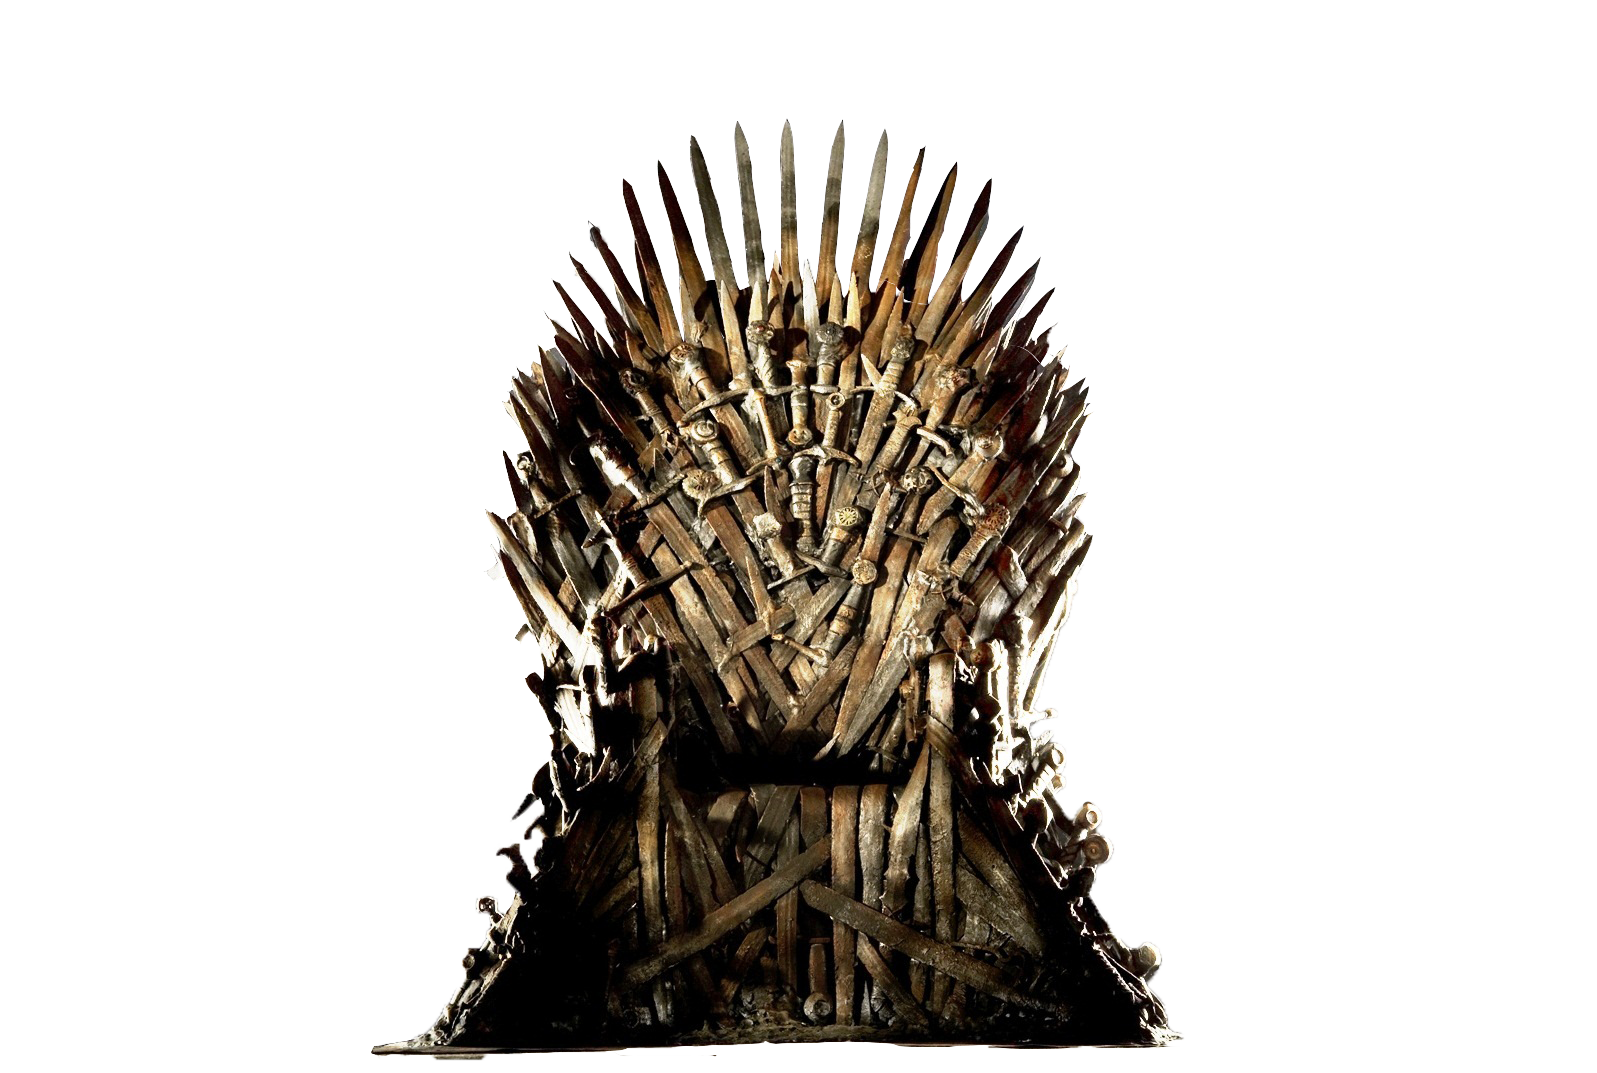 Game Of Thrones The Iron Throne Png Iron Throne Game Of Thrones Throne